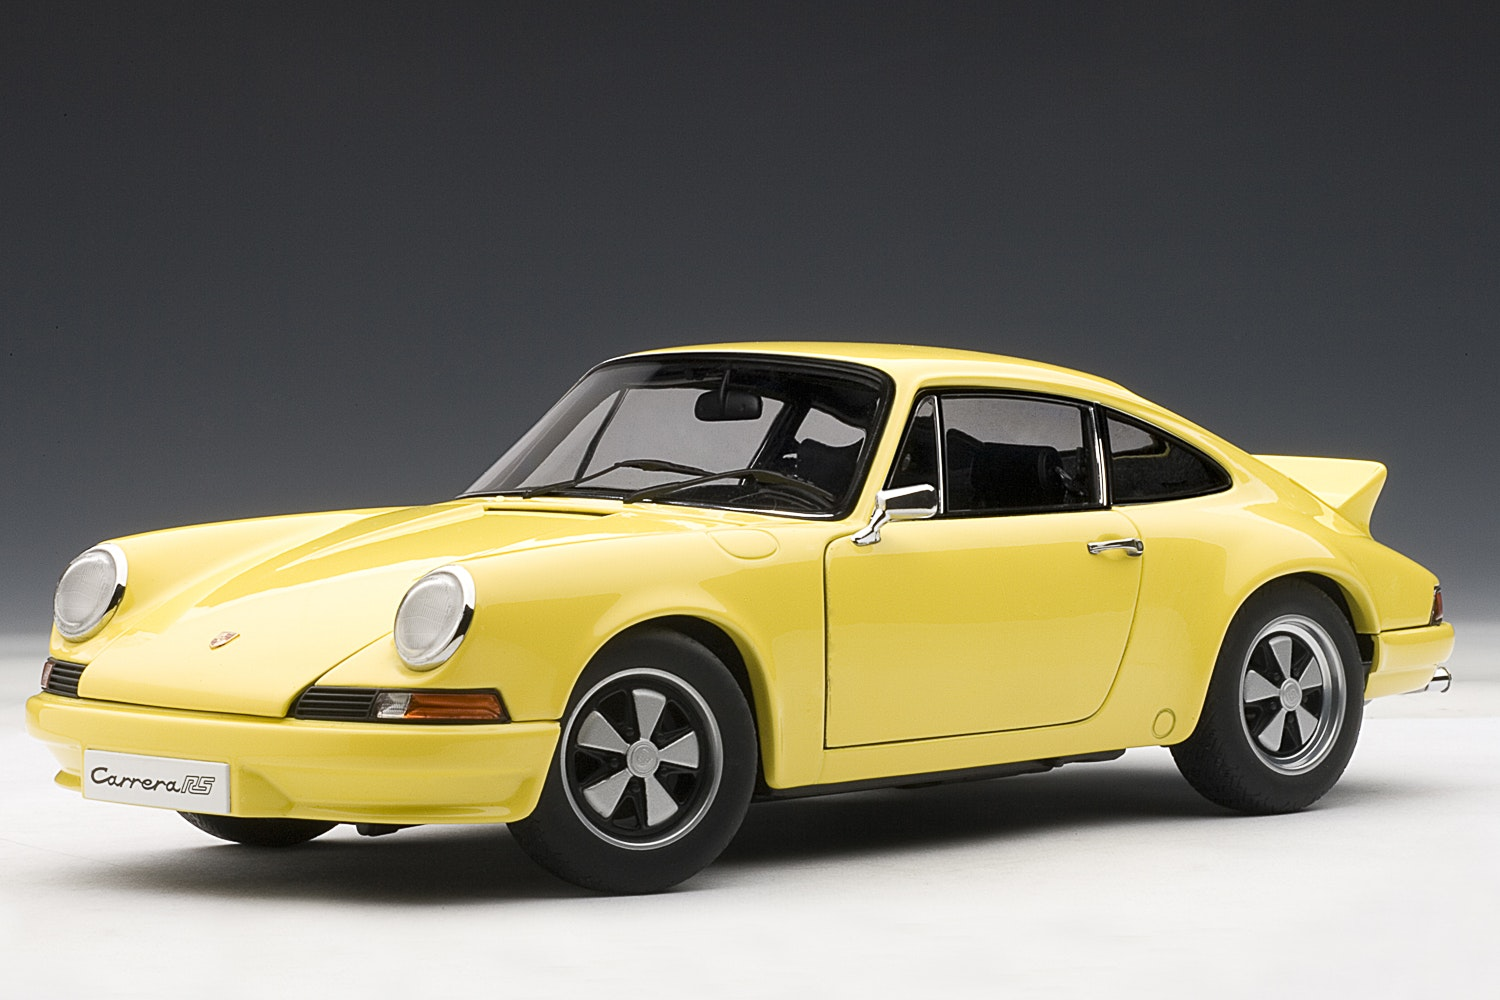 Porsche 911 Carrera RS 2.7 1973, Light Yellow - Standard Version